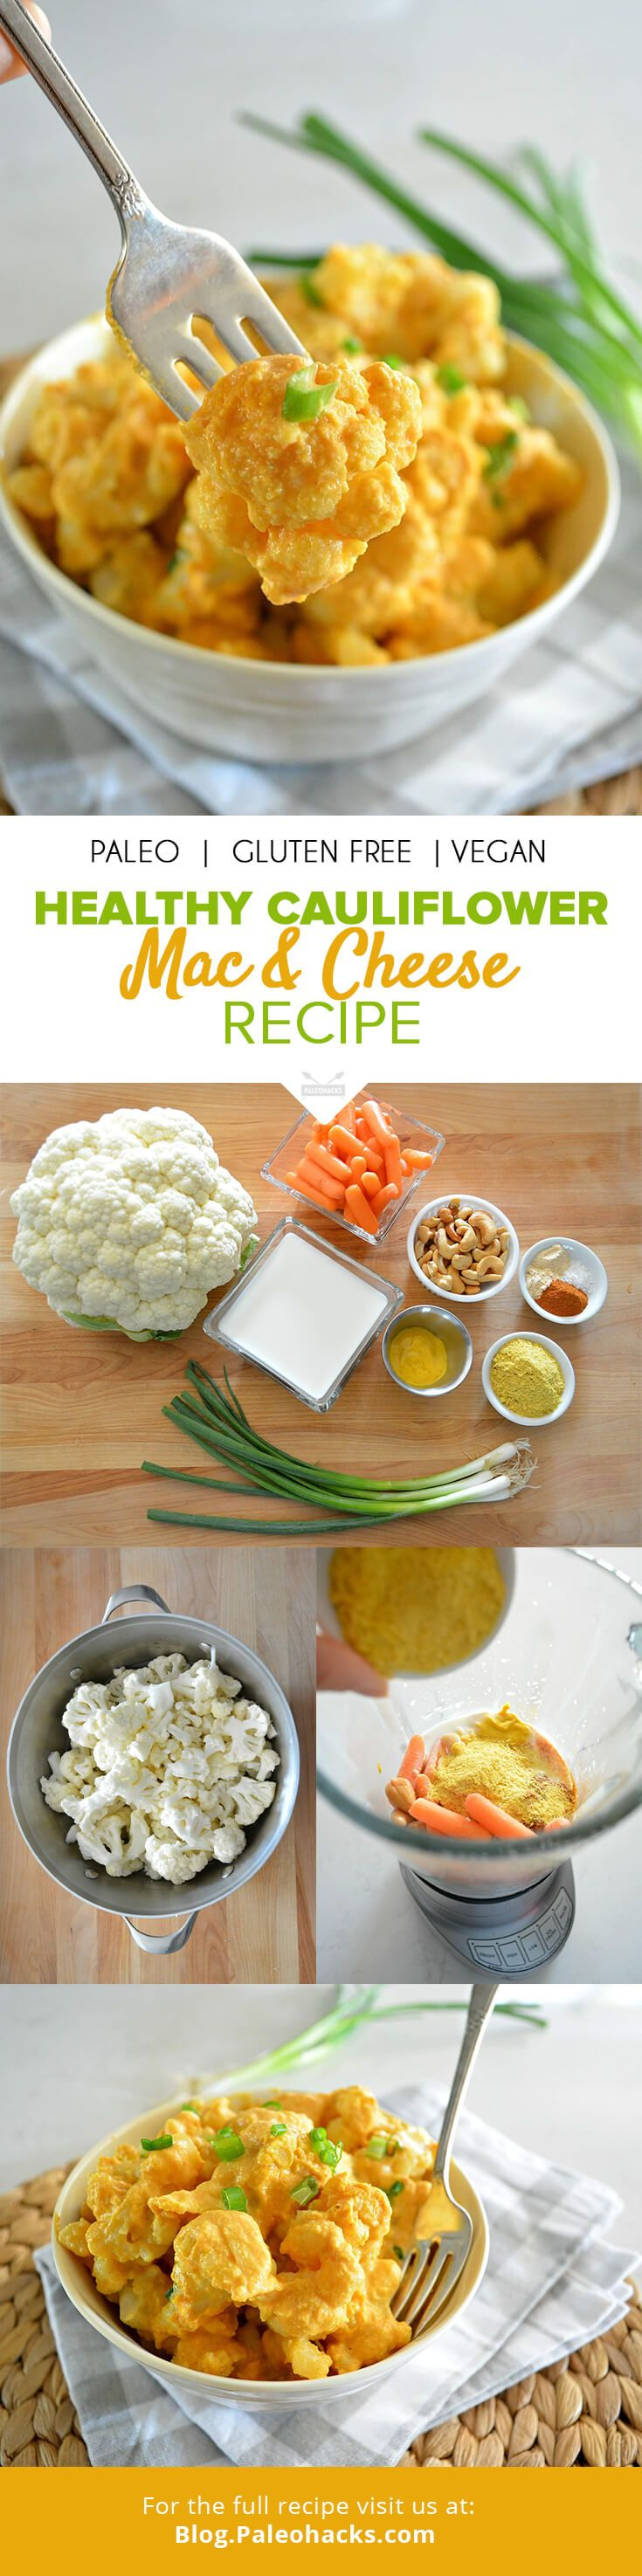 Cauliflower florets are smothered in a creamy, dairy-free cheese sauce that instantly evokes memories of this childhood classic with a healthy makeover. For the full recipe, visit us here: http://paleo.co/caulimacncheese